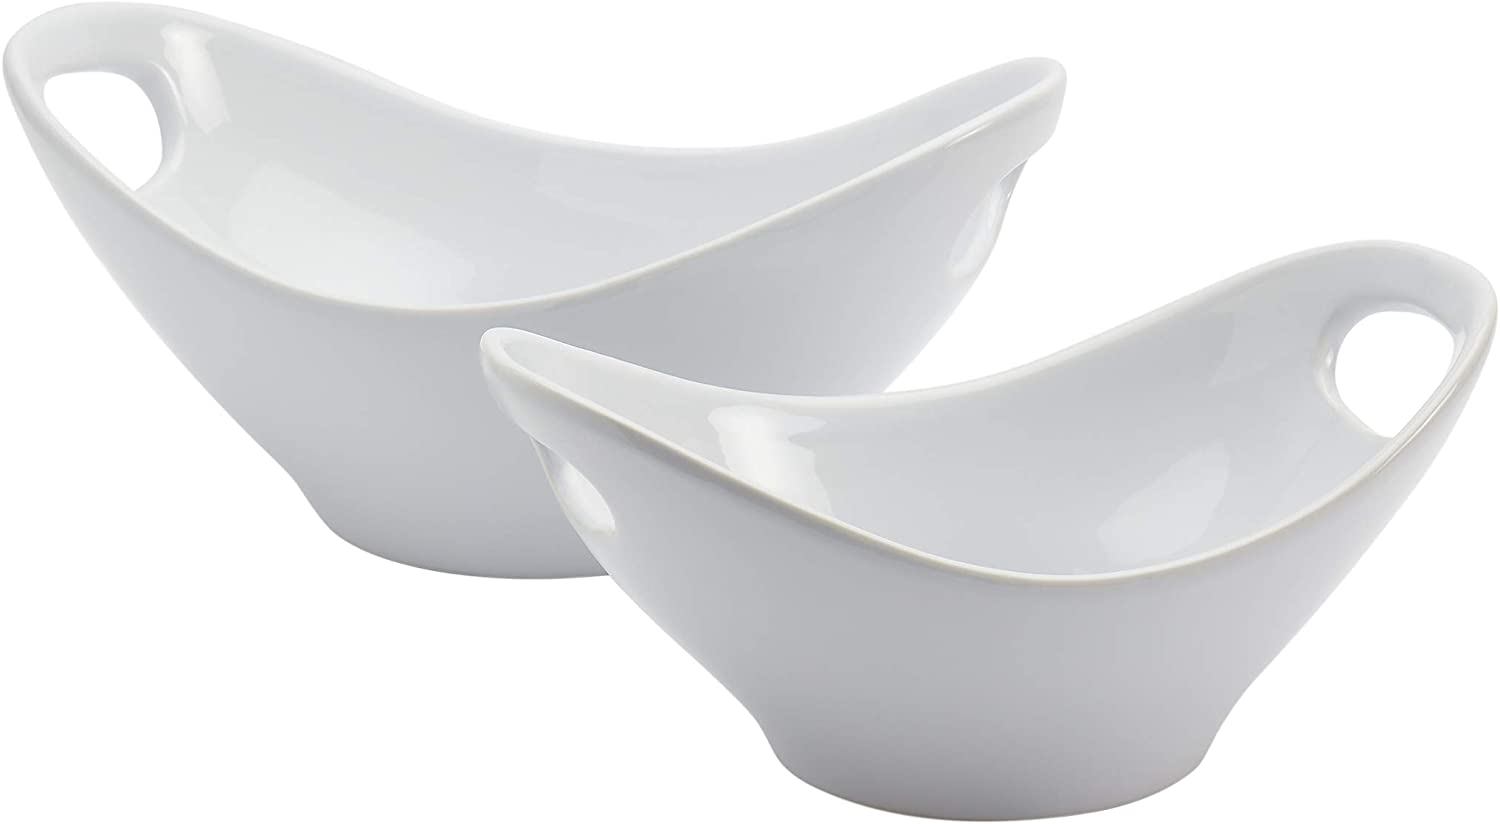 Tabletops Gallery White Durable Stoneware Serving Dishes Platter and Sets with Handles, Deep Oval Serving Bowl Set of 2